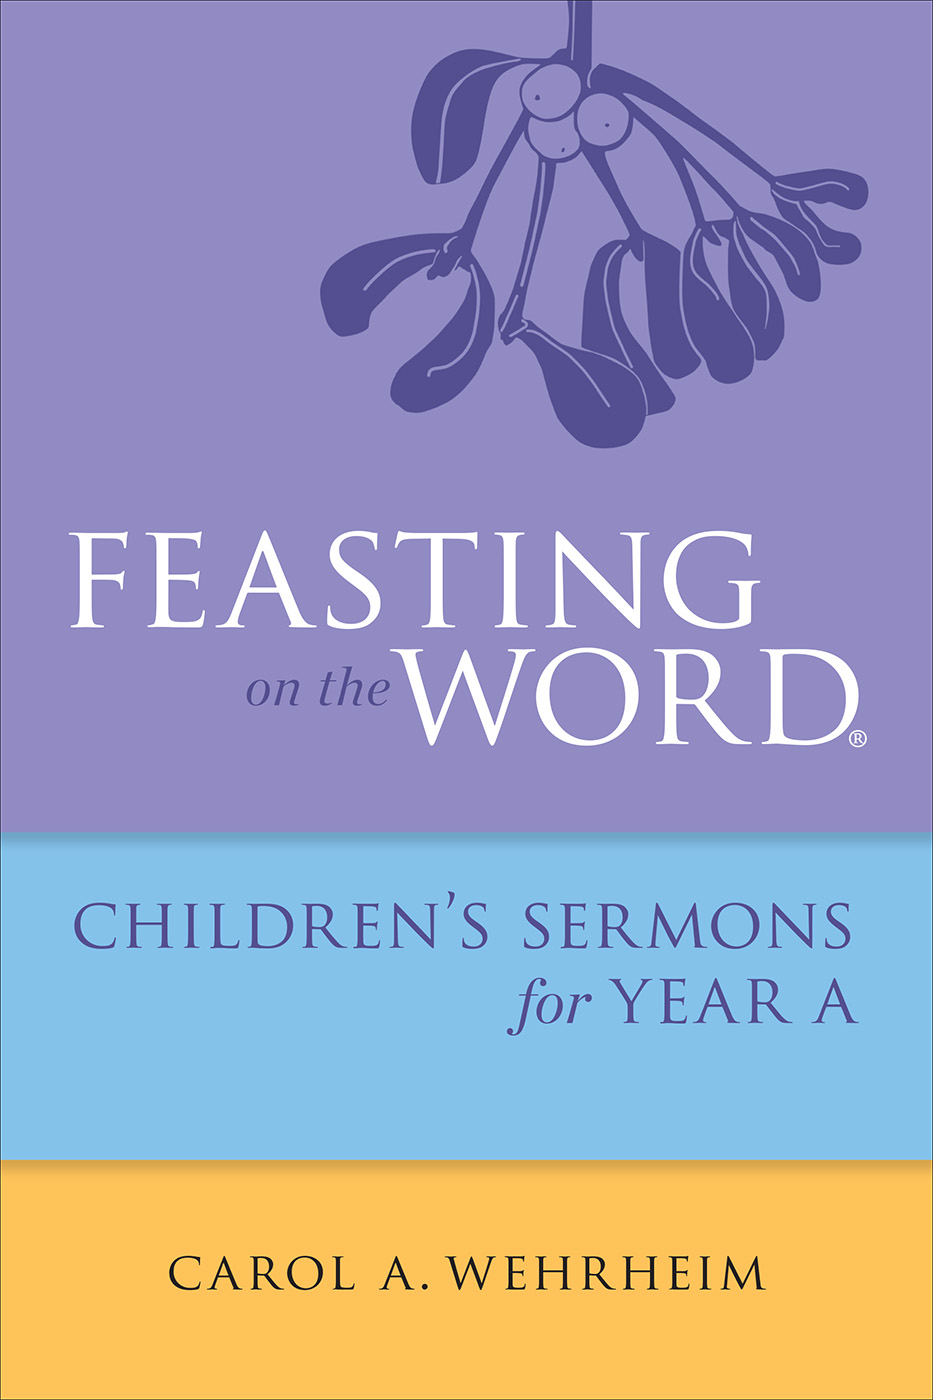 Feasting on the Word Children's Sermons for Year A